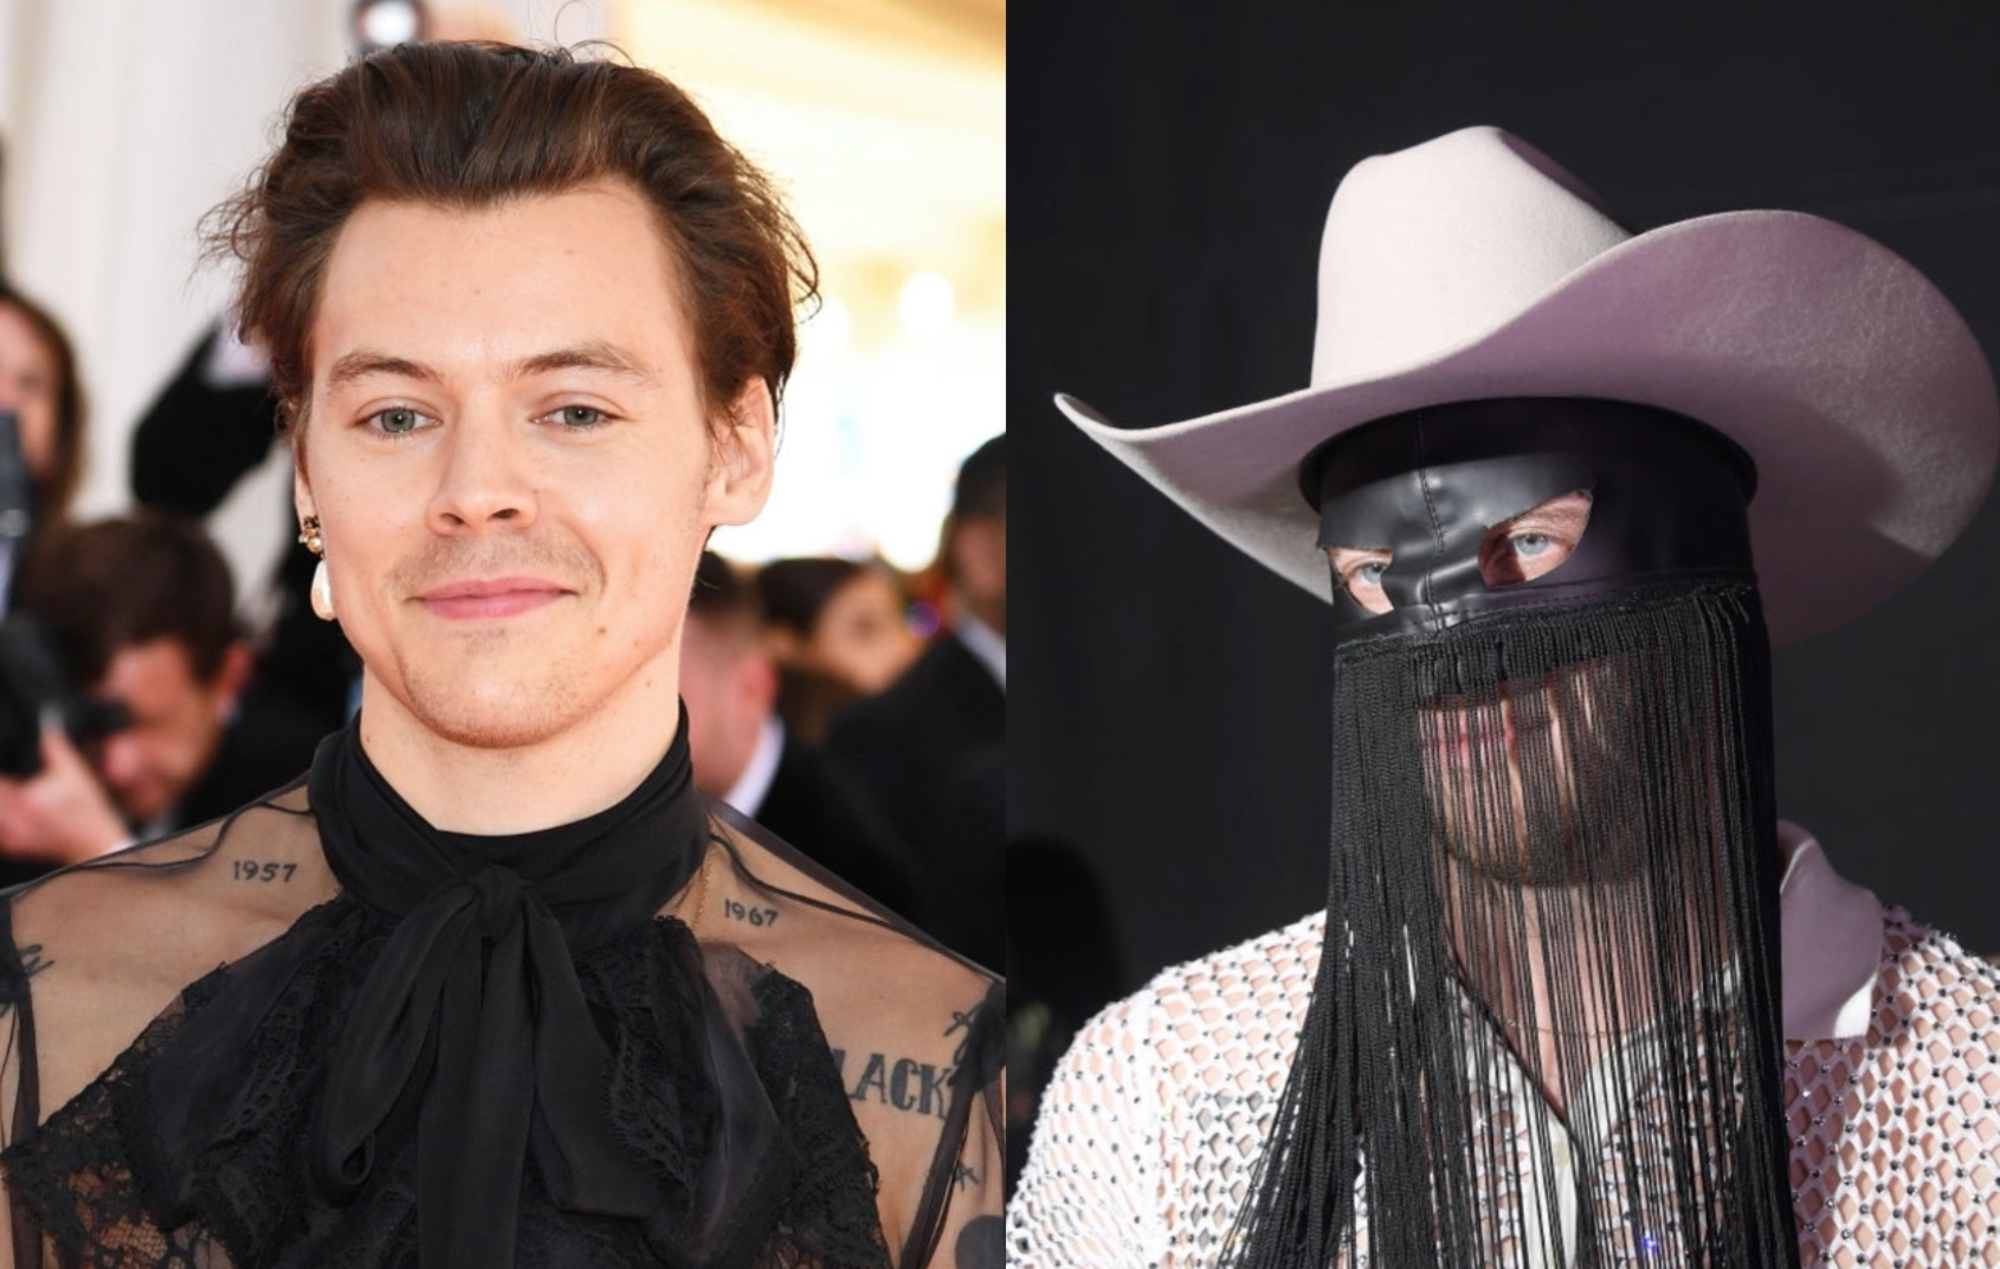 Harry Styles Announces Harryween Shows With Orville Peck